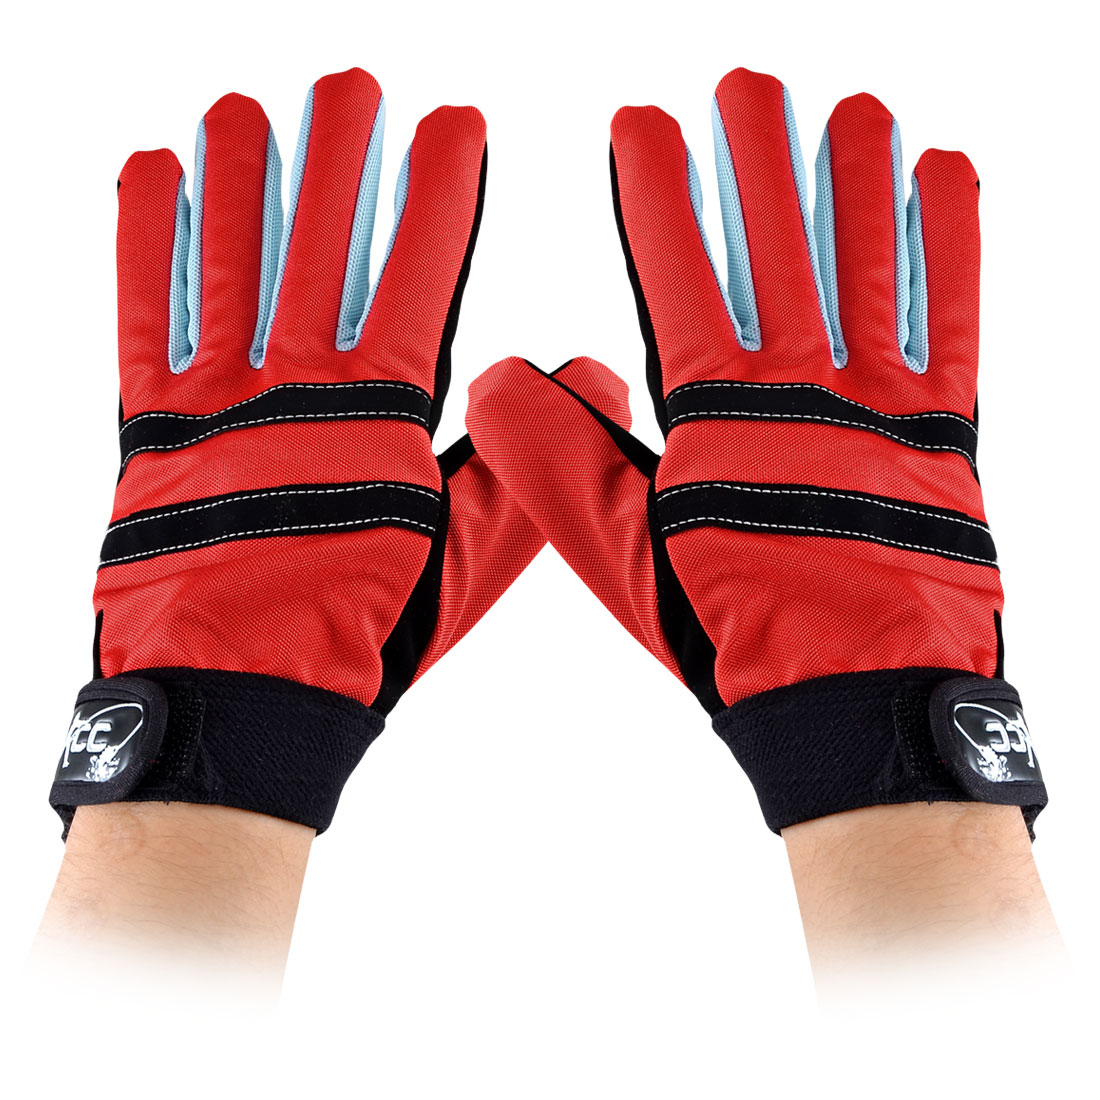 Pair Full Finger Design Nonslip Hook Loop Red Black Palm Fishing Gloves